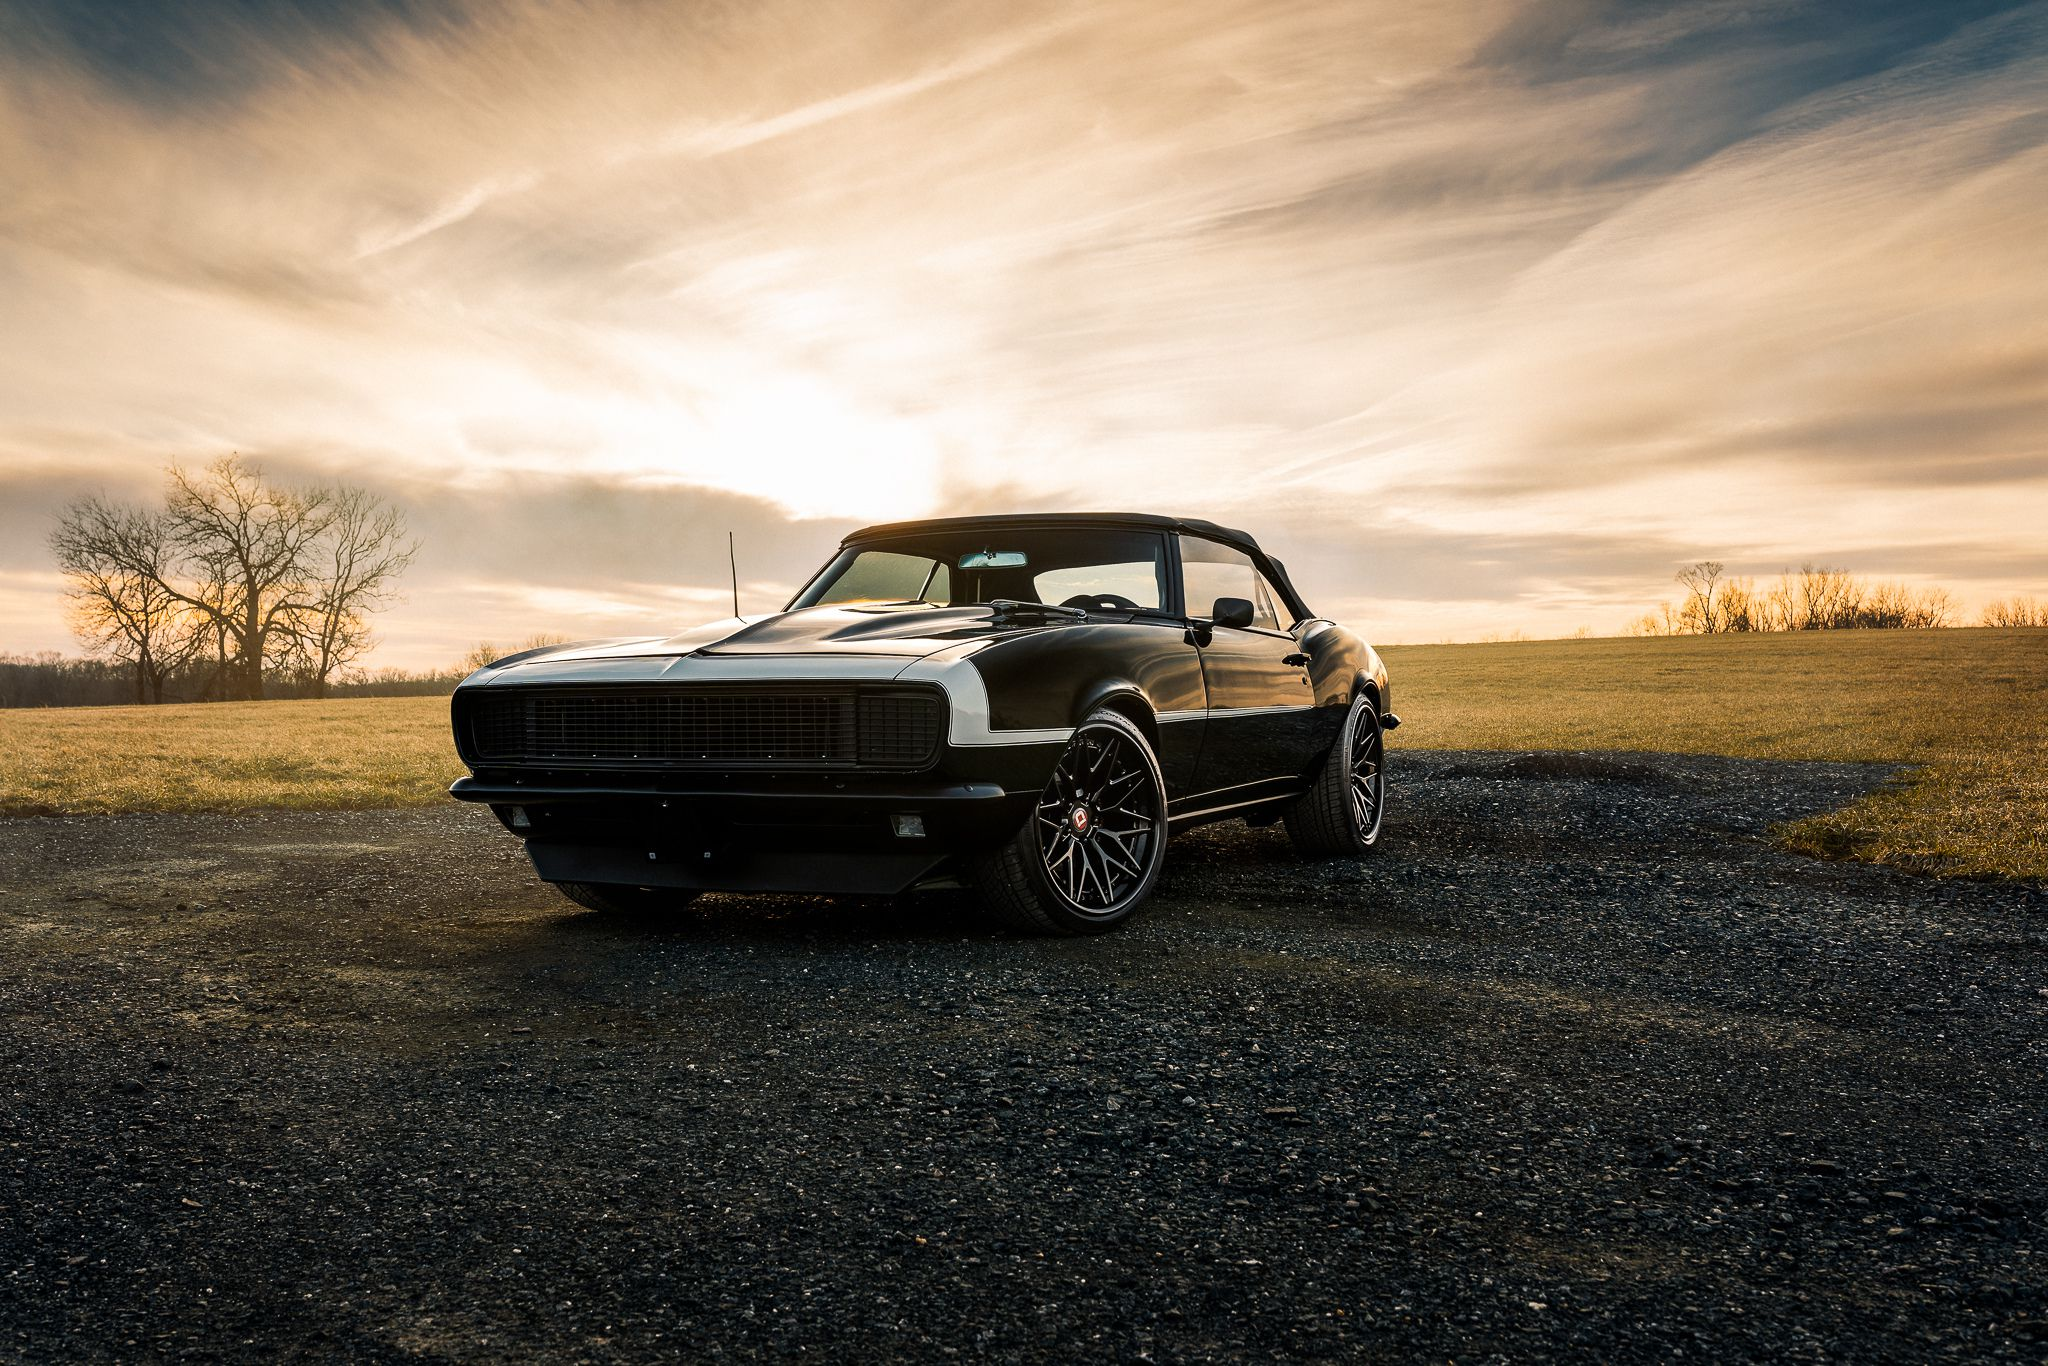 Camaro at sunset